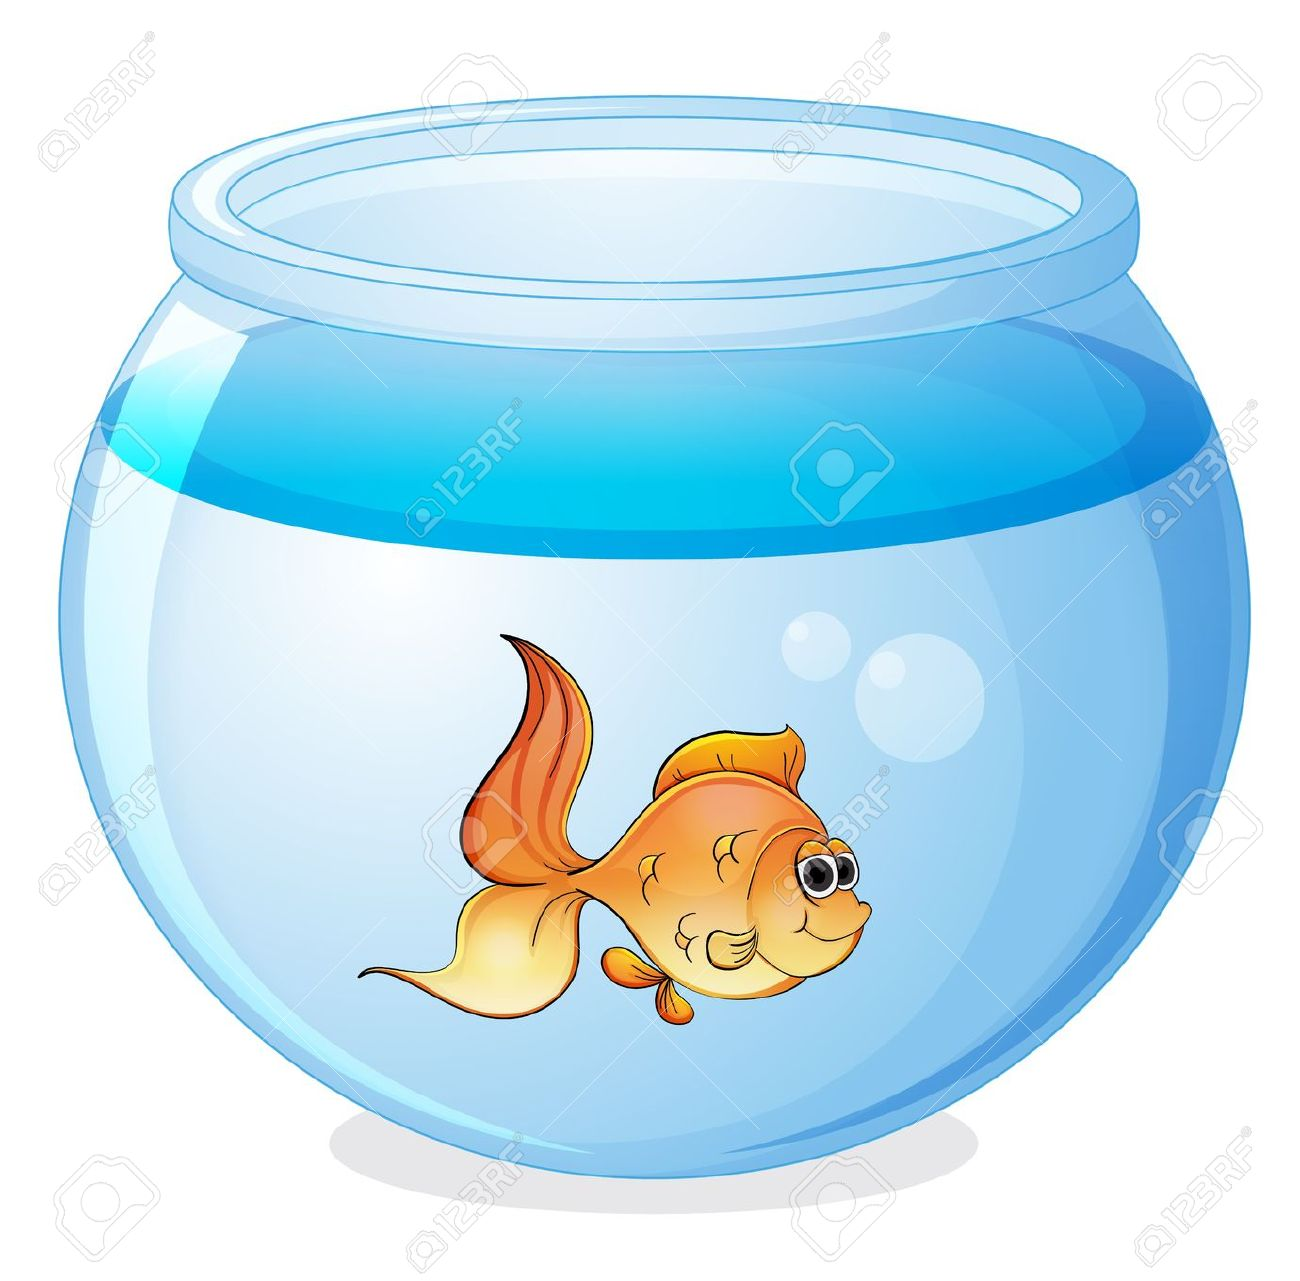 1300x1281 Fishtank clipart fish bowl